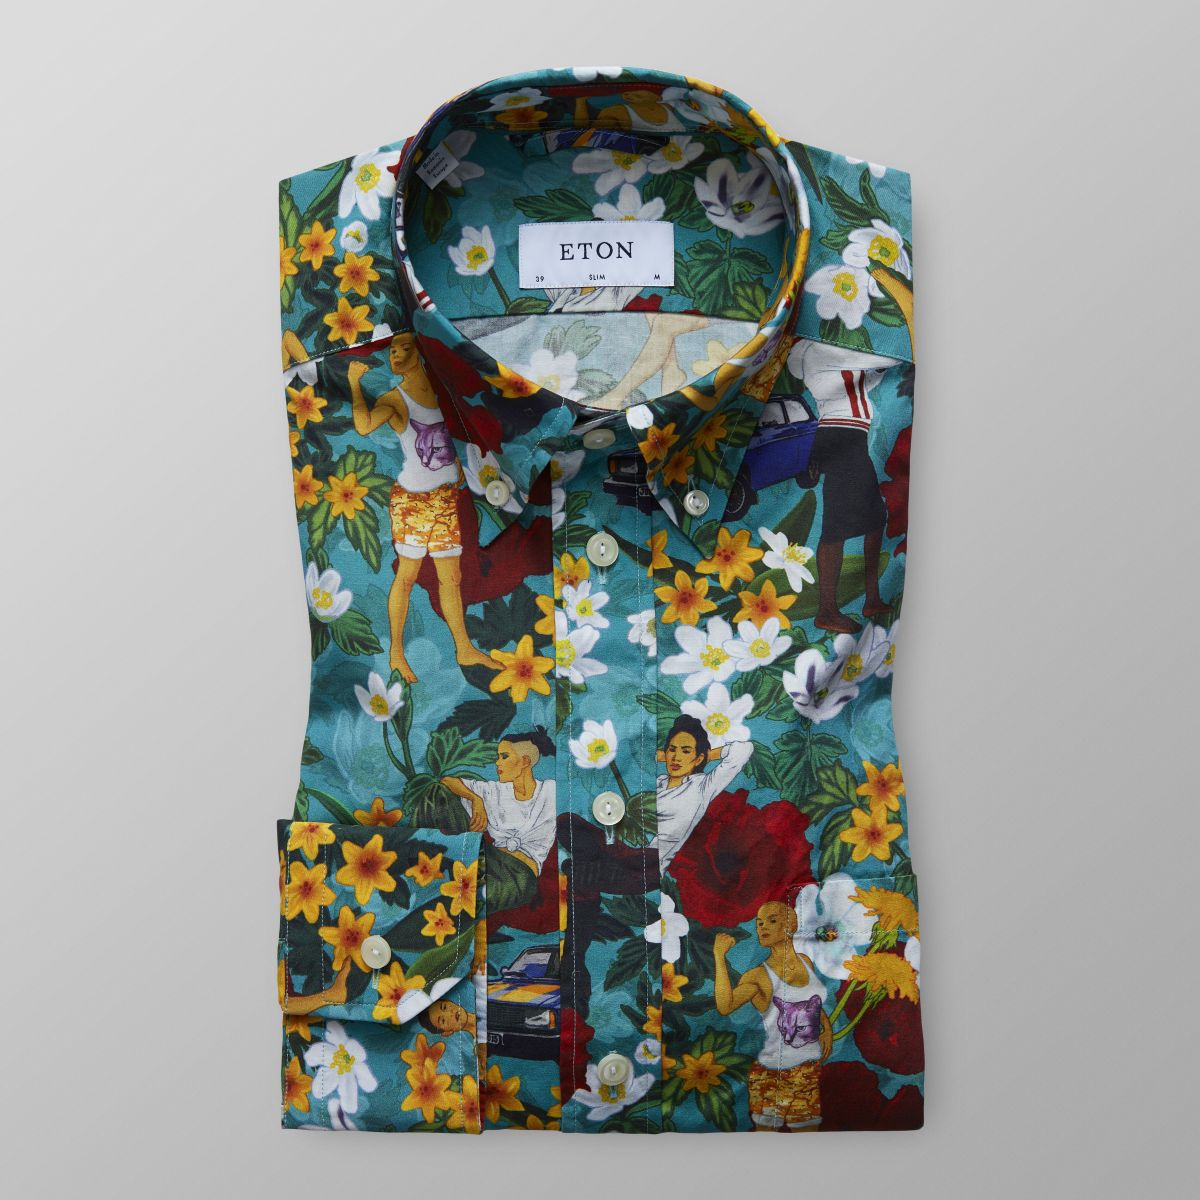 Modern Hawaii Shirt Slim Fit Eton Shirts Uk